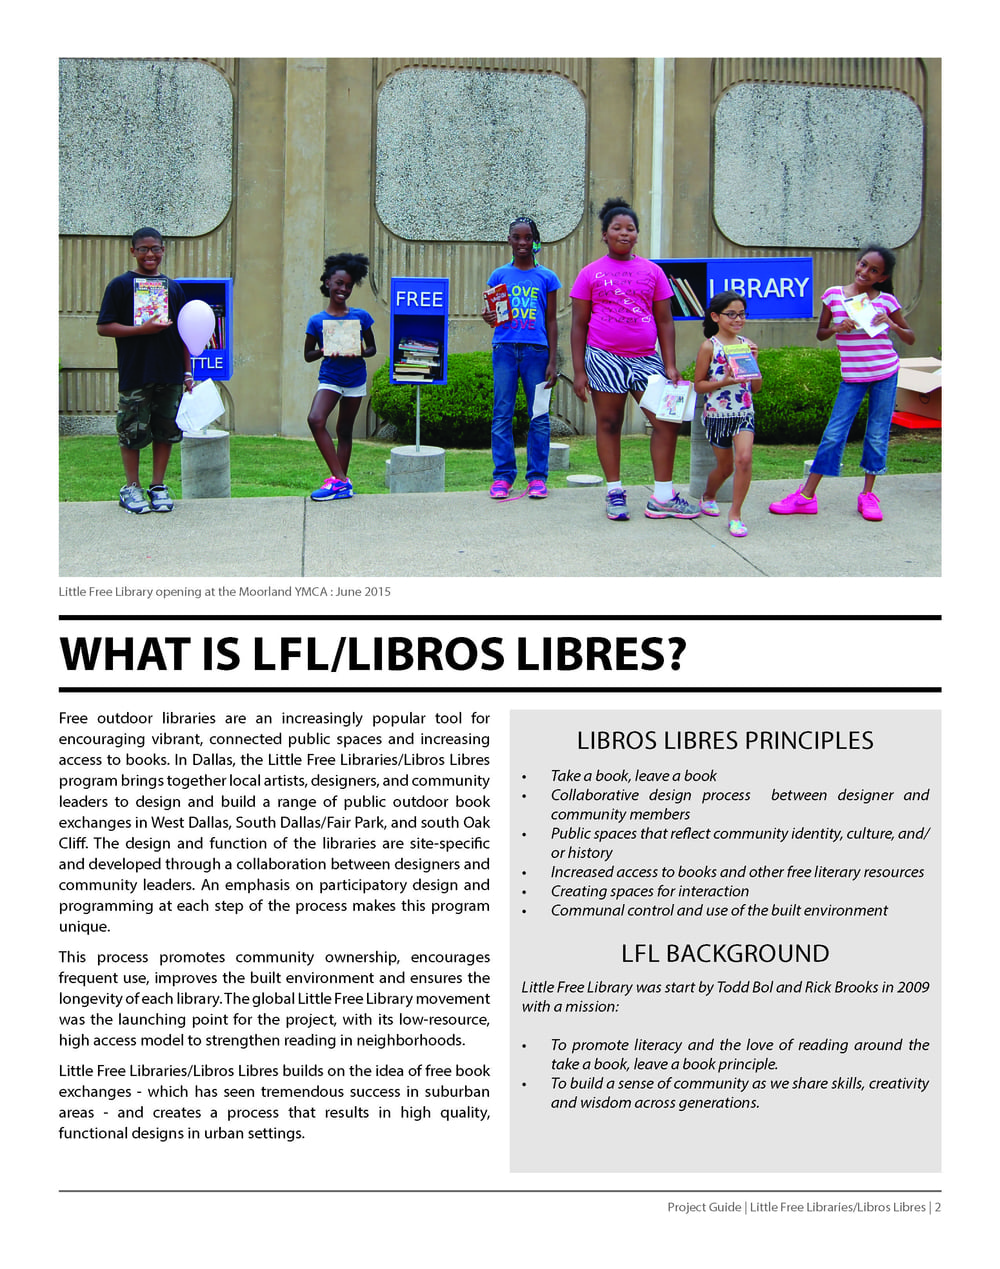 Little Free Libraries Project Guide_20150814_Page_2.jpg